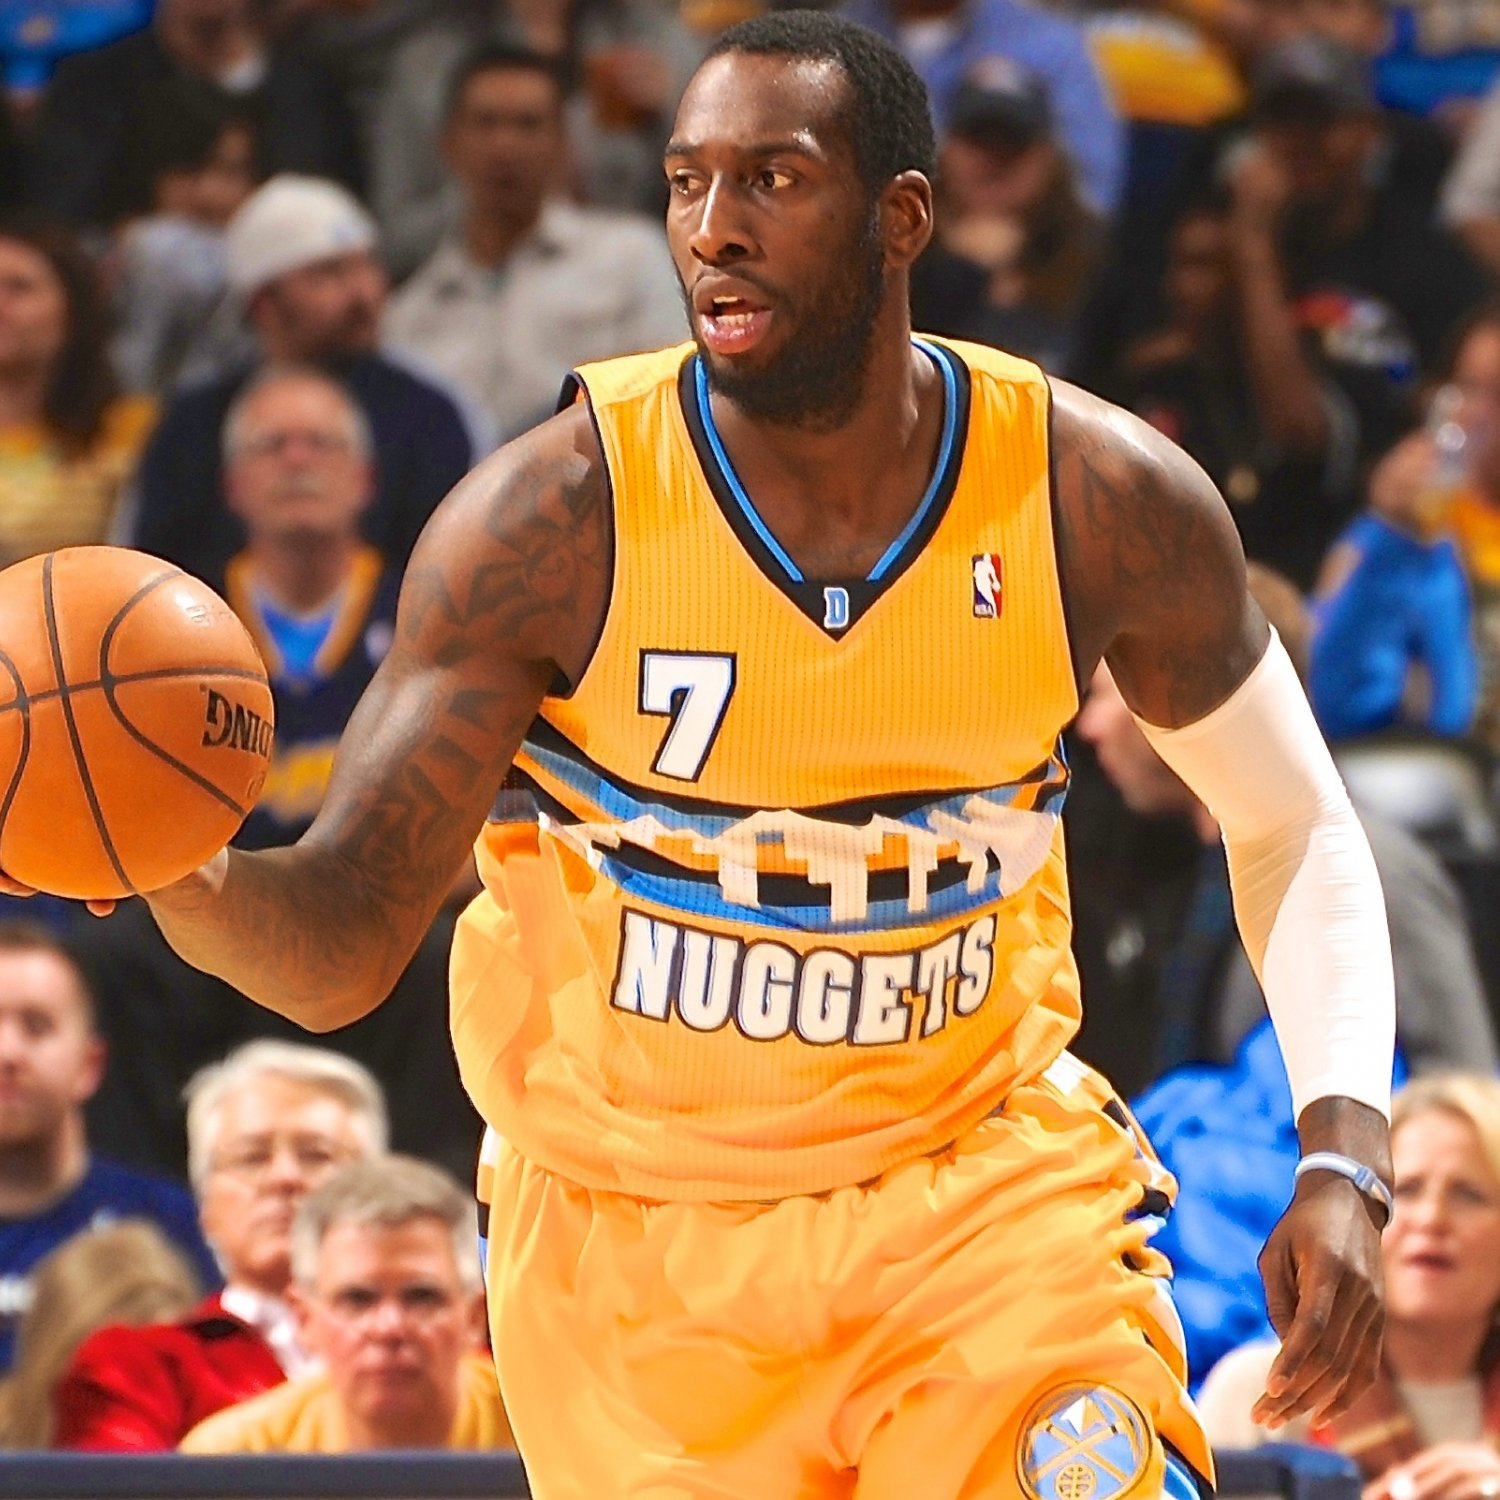 Nuggets Quarter Season Tickets: JJ Hickson Injury: Updates On Nuggets Forward's Knee And